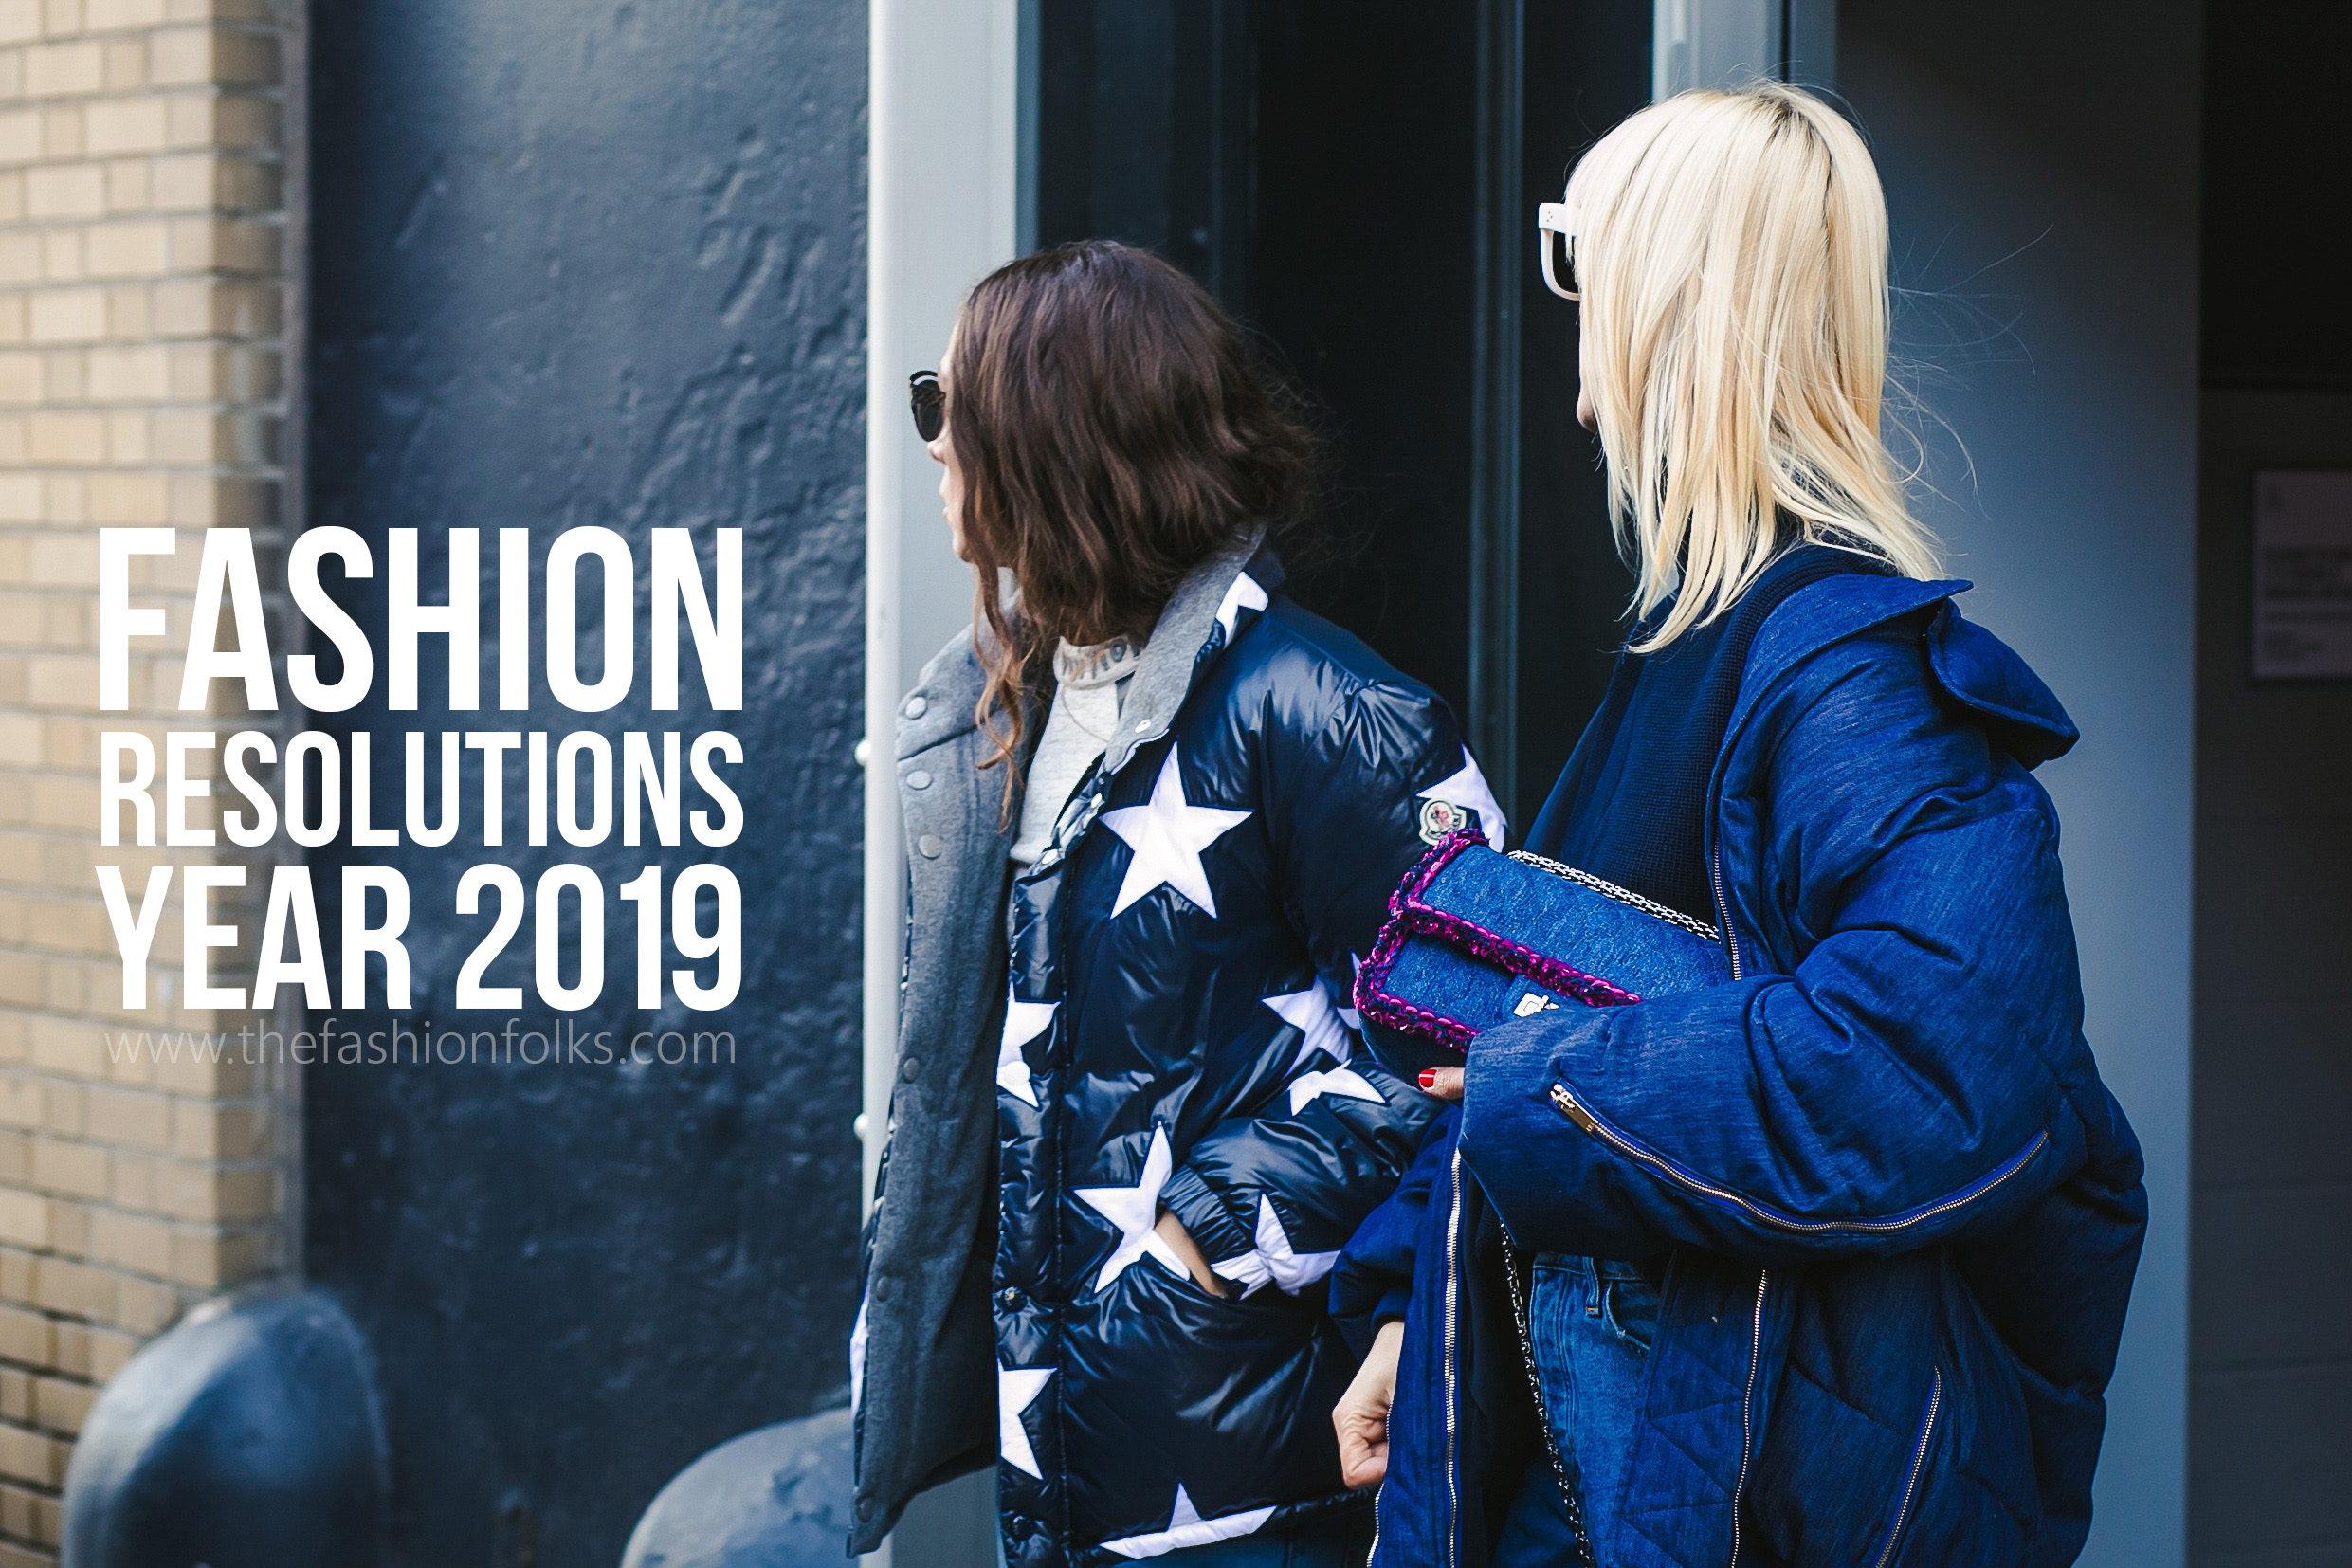 Fashion Resolutions 2019